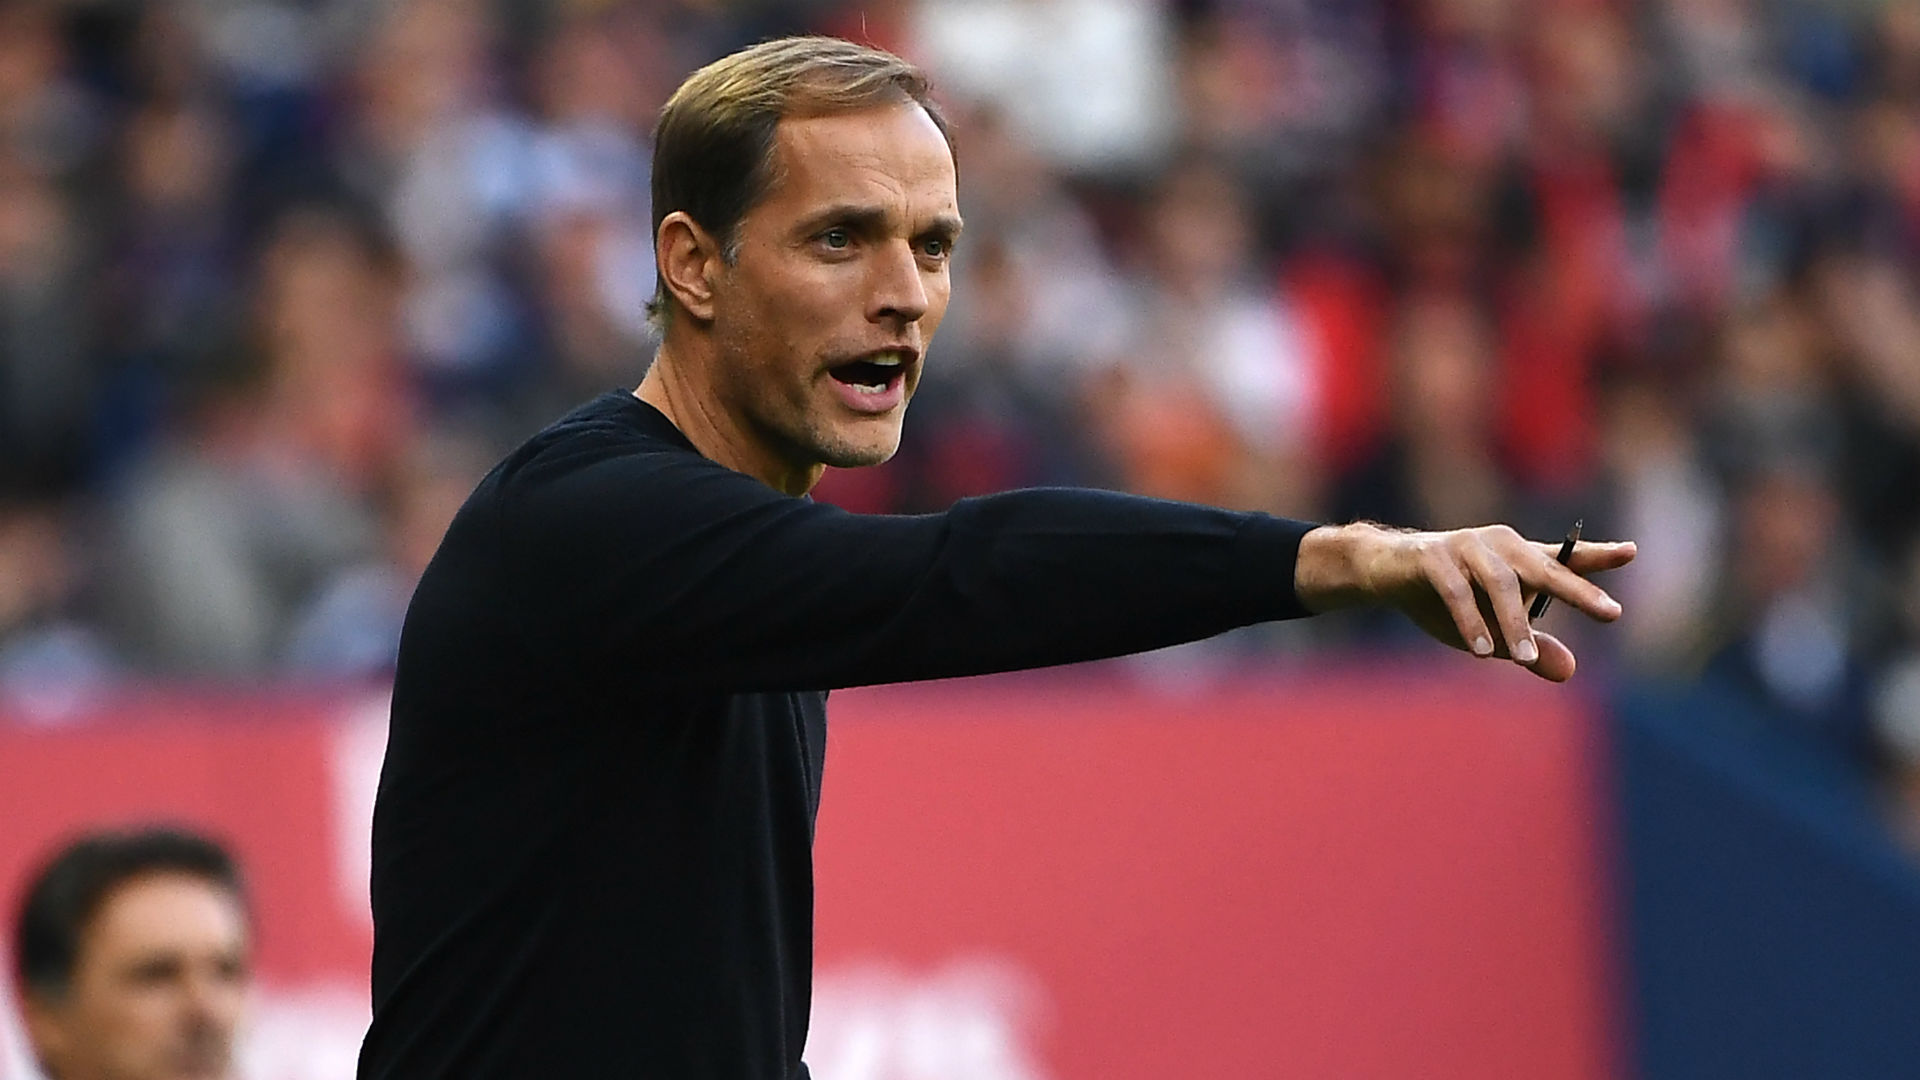 We're not at a restaurant! - Tuchel annoyed with journalist after PSG draw